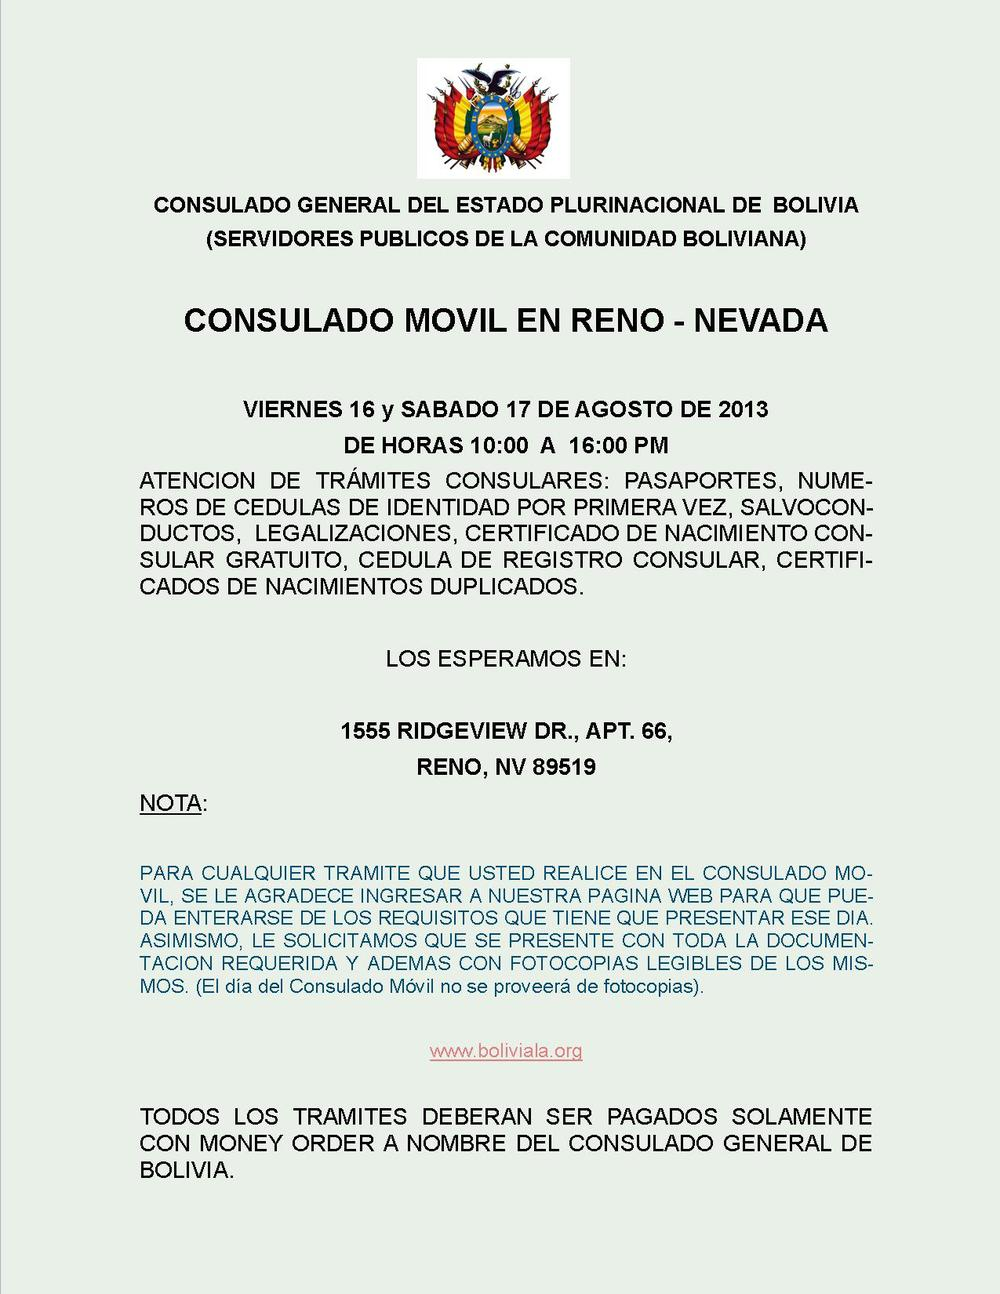 CONSULADO MOVIL RENO NEVADA.jpg